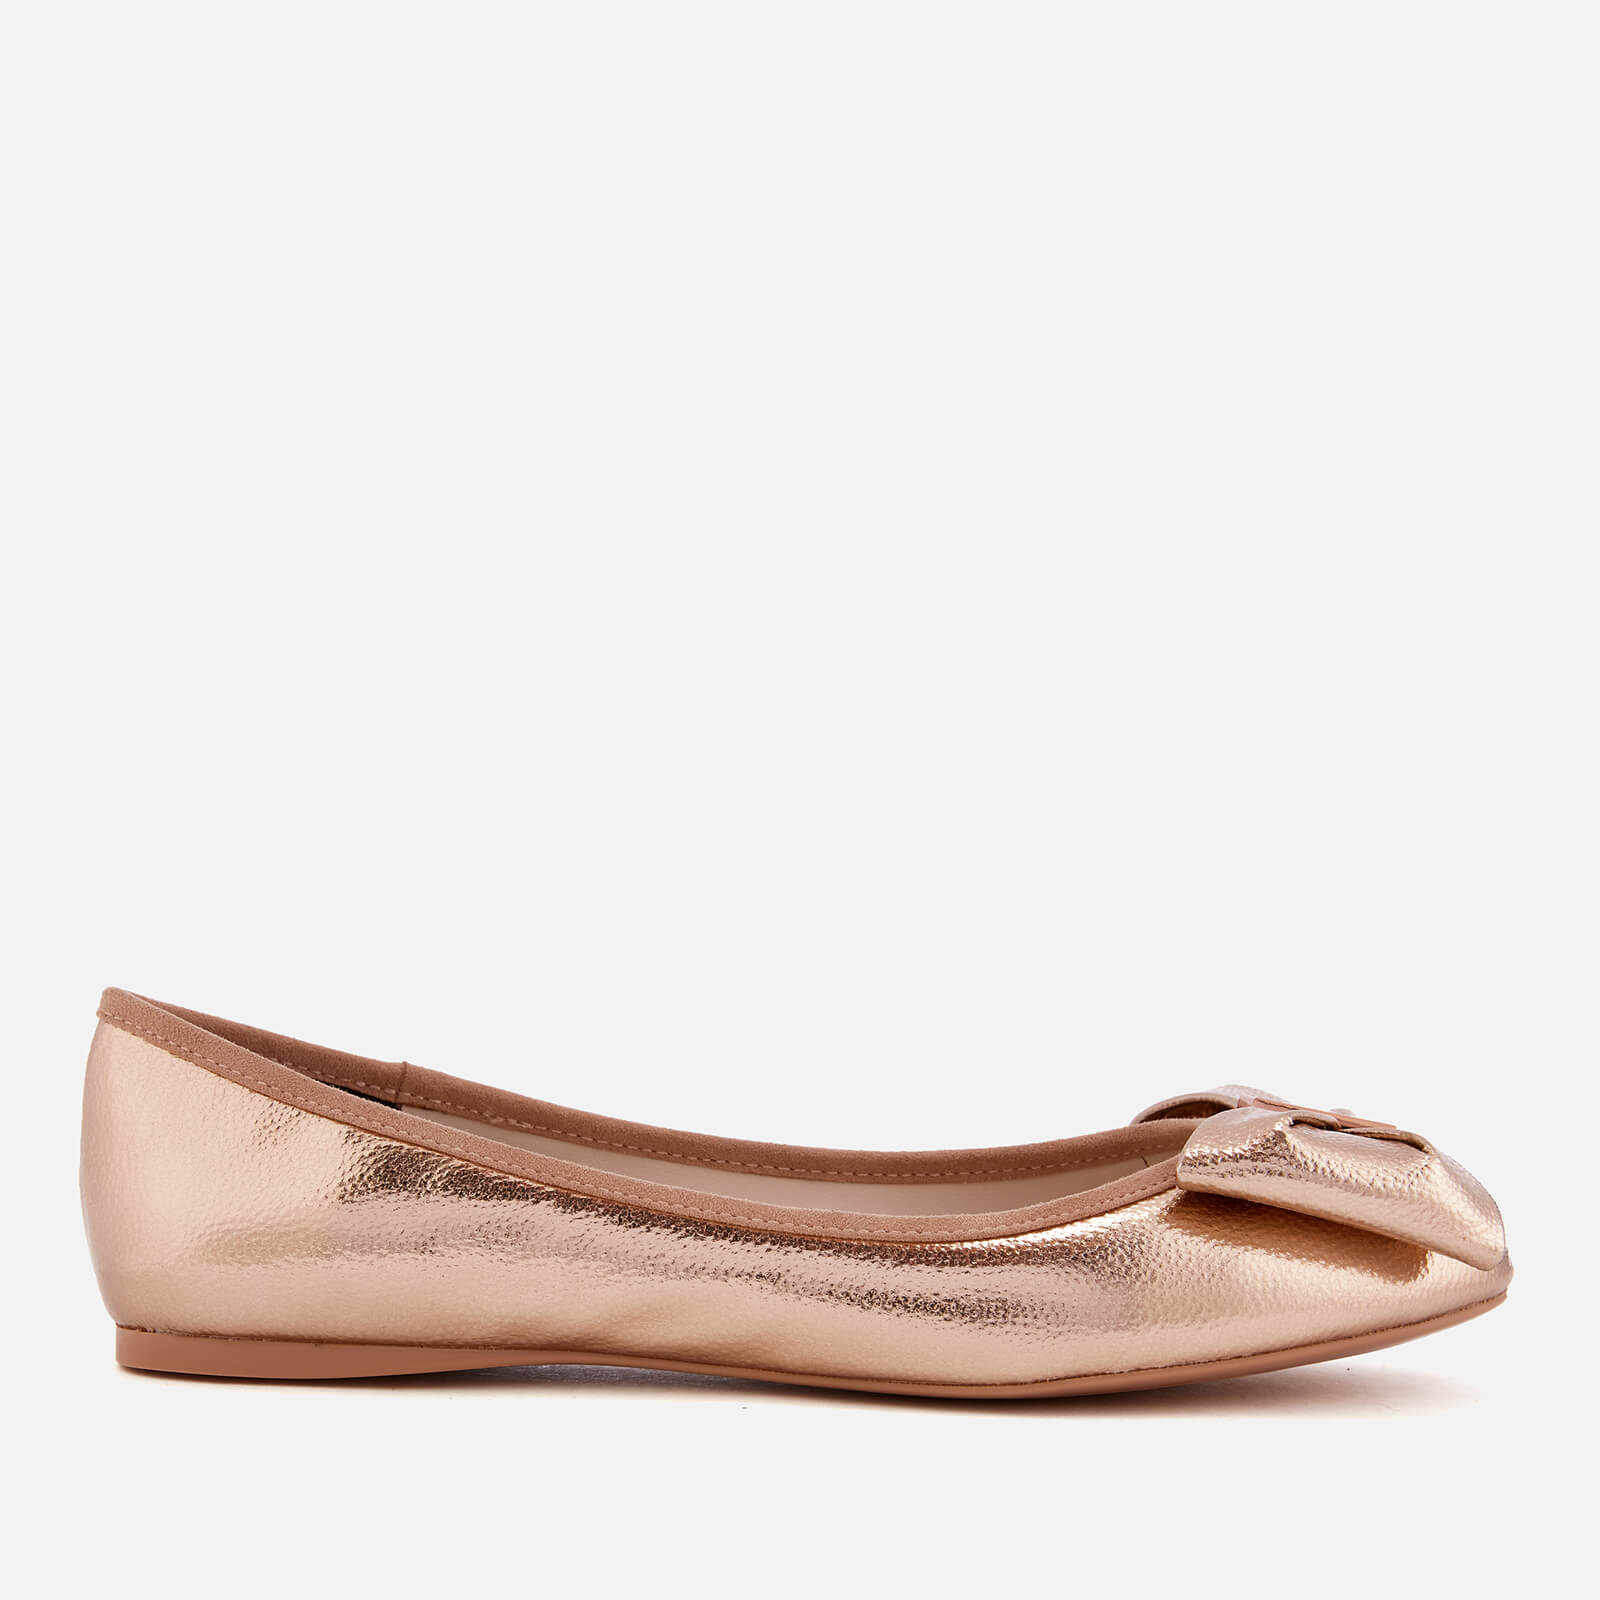 e75cf4a95 Ted Baker Women s Imme 4 Bow Ballet Flats - Rose Gold Womens ...